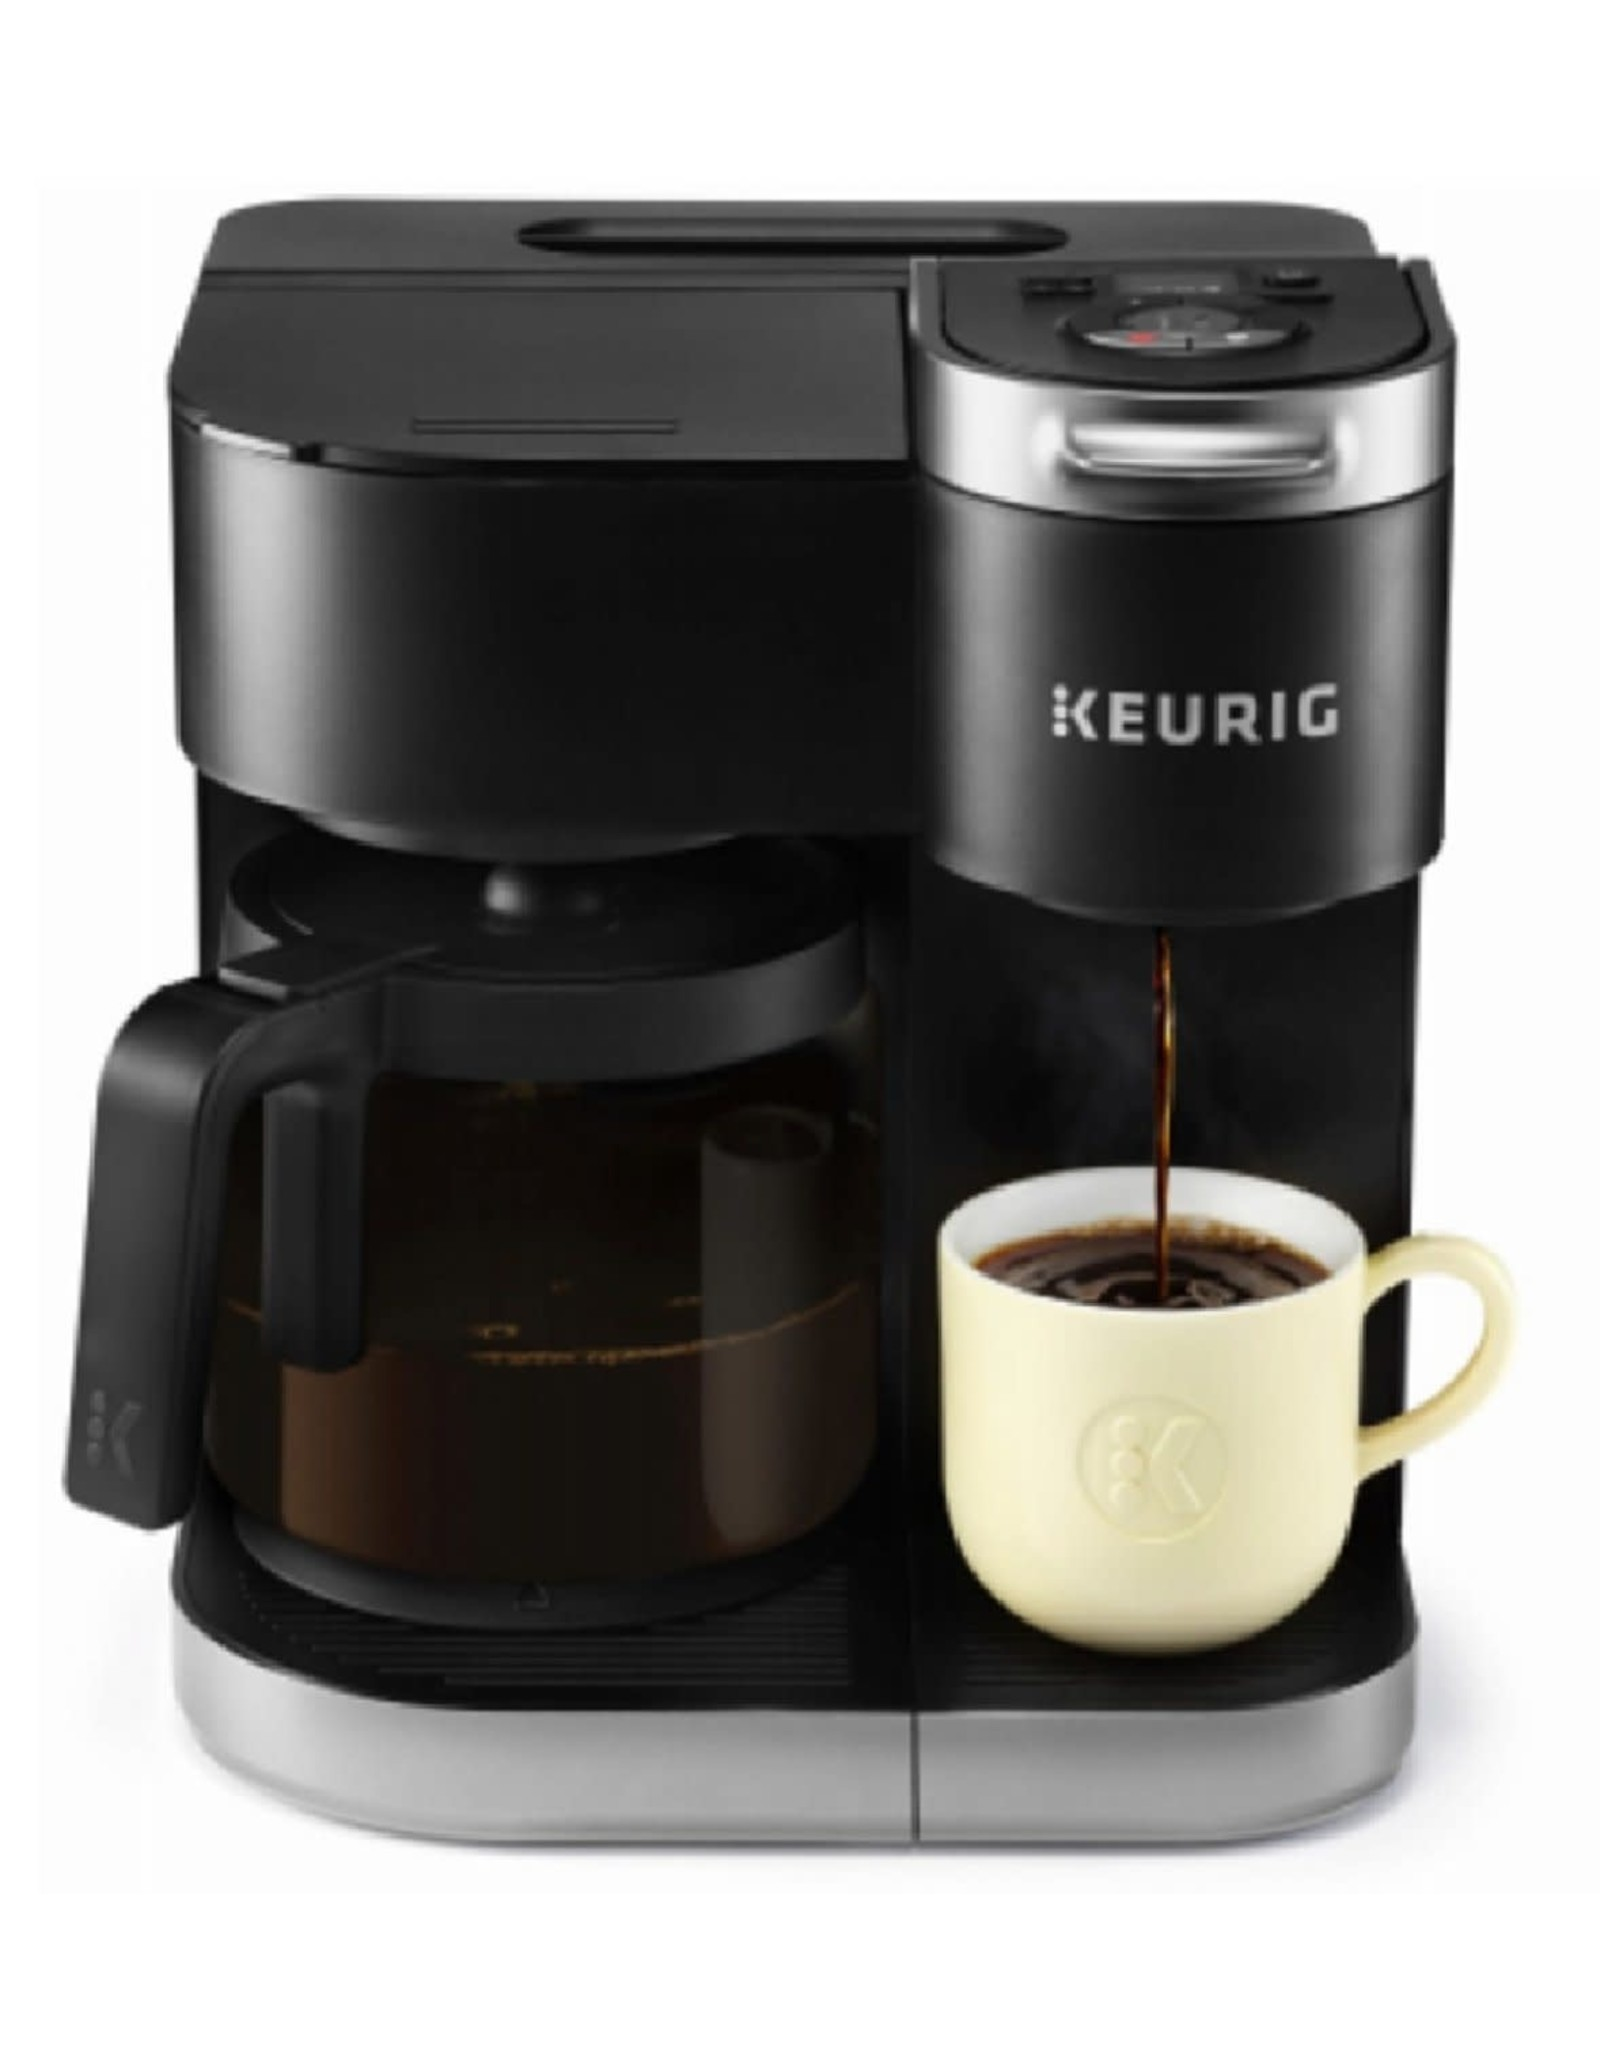 keurig 5000204977 Keurig K-Duo Coffee Maker, Single Serve and 12-Cup Carafe Drip Coffee Brewer, Compatible with K-Cup Pods and Ground Coffee, Black